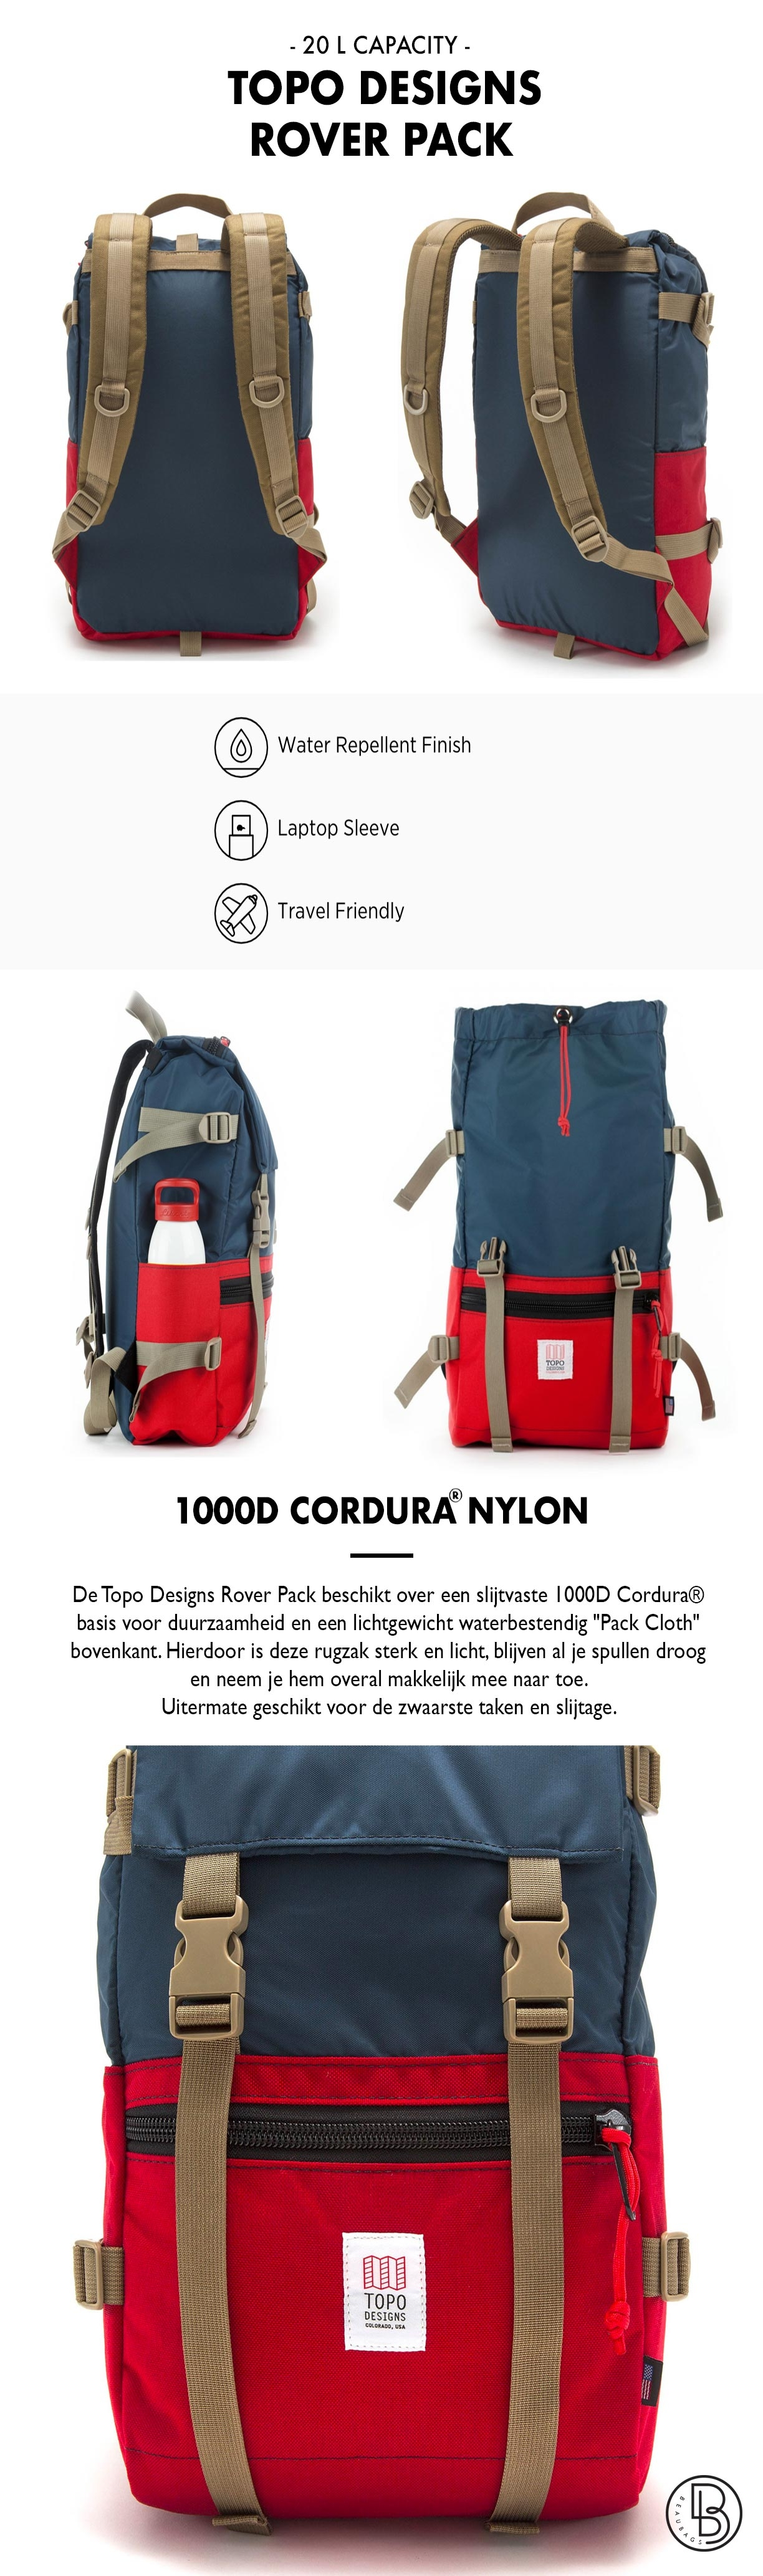 Topo Designs Rover Pack Productinformatie